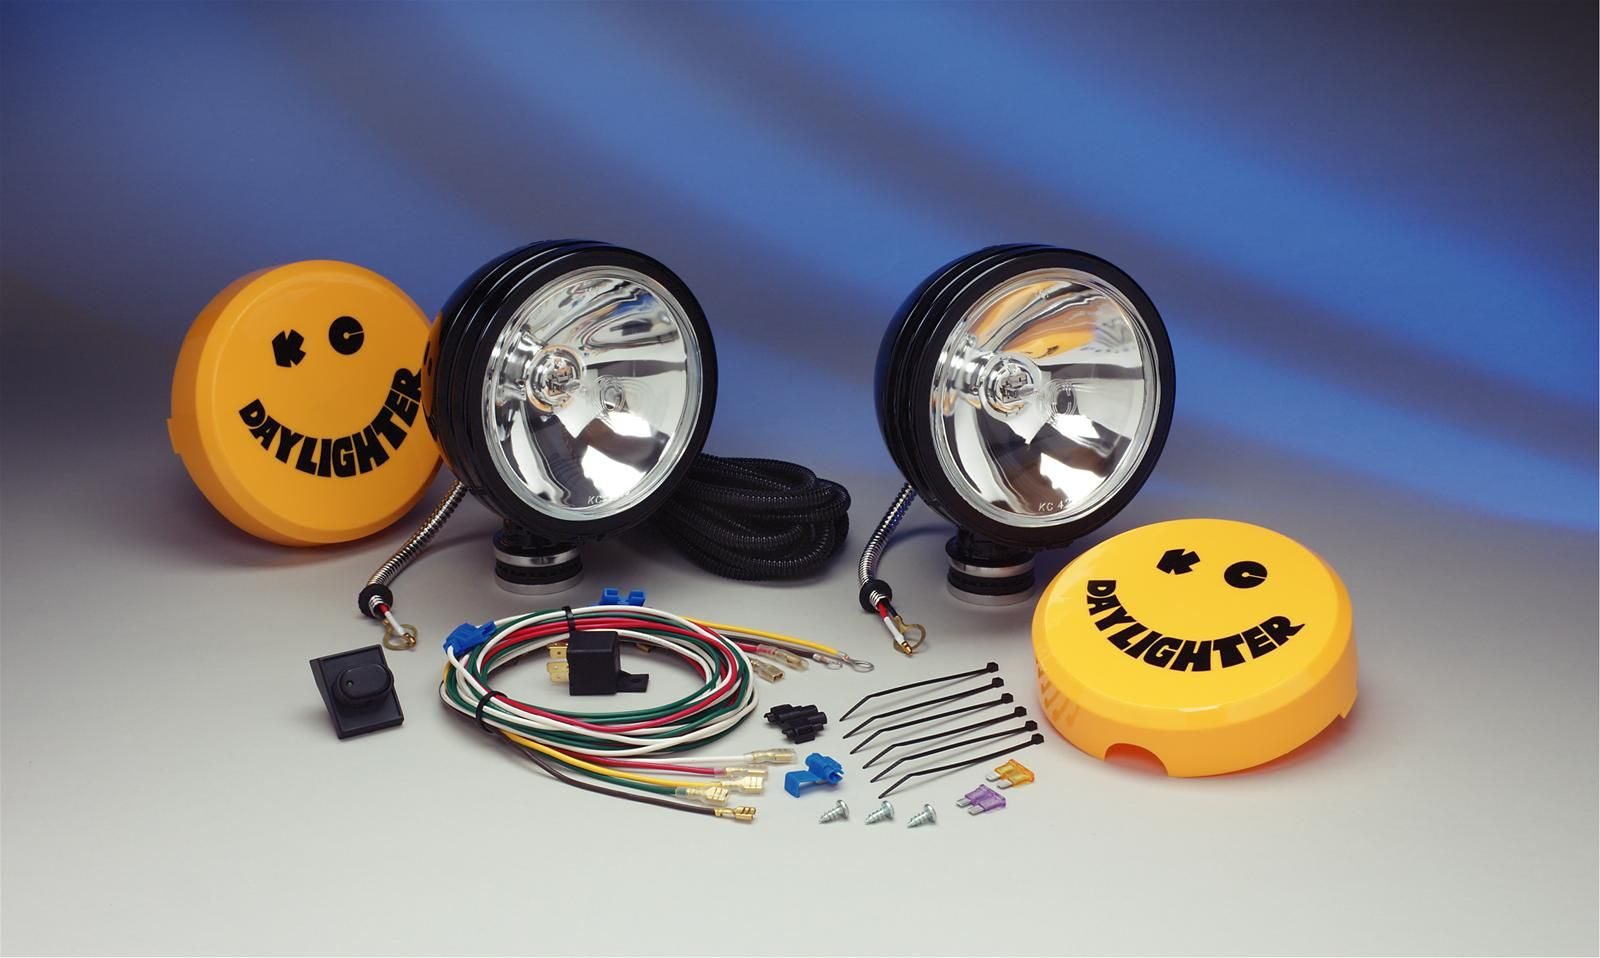 Kc Hilites Daylighters 238 Free Shipping On Orders Over 99 At Wiring Harness Daylighter Deluxe Quartz Halogen Black Long Range Off Road Light Kit Are